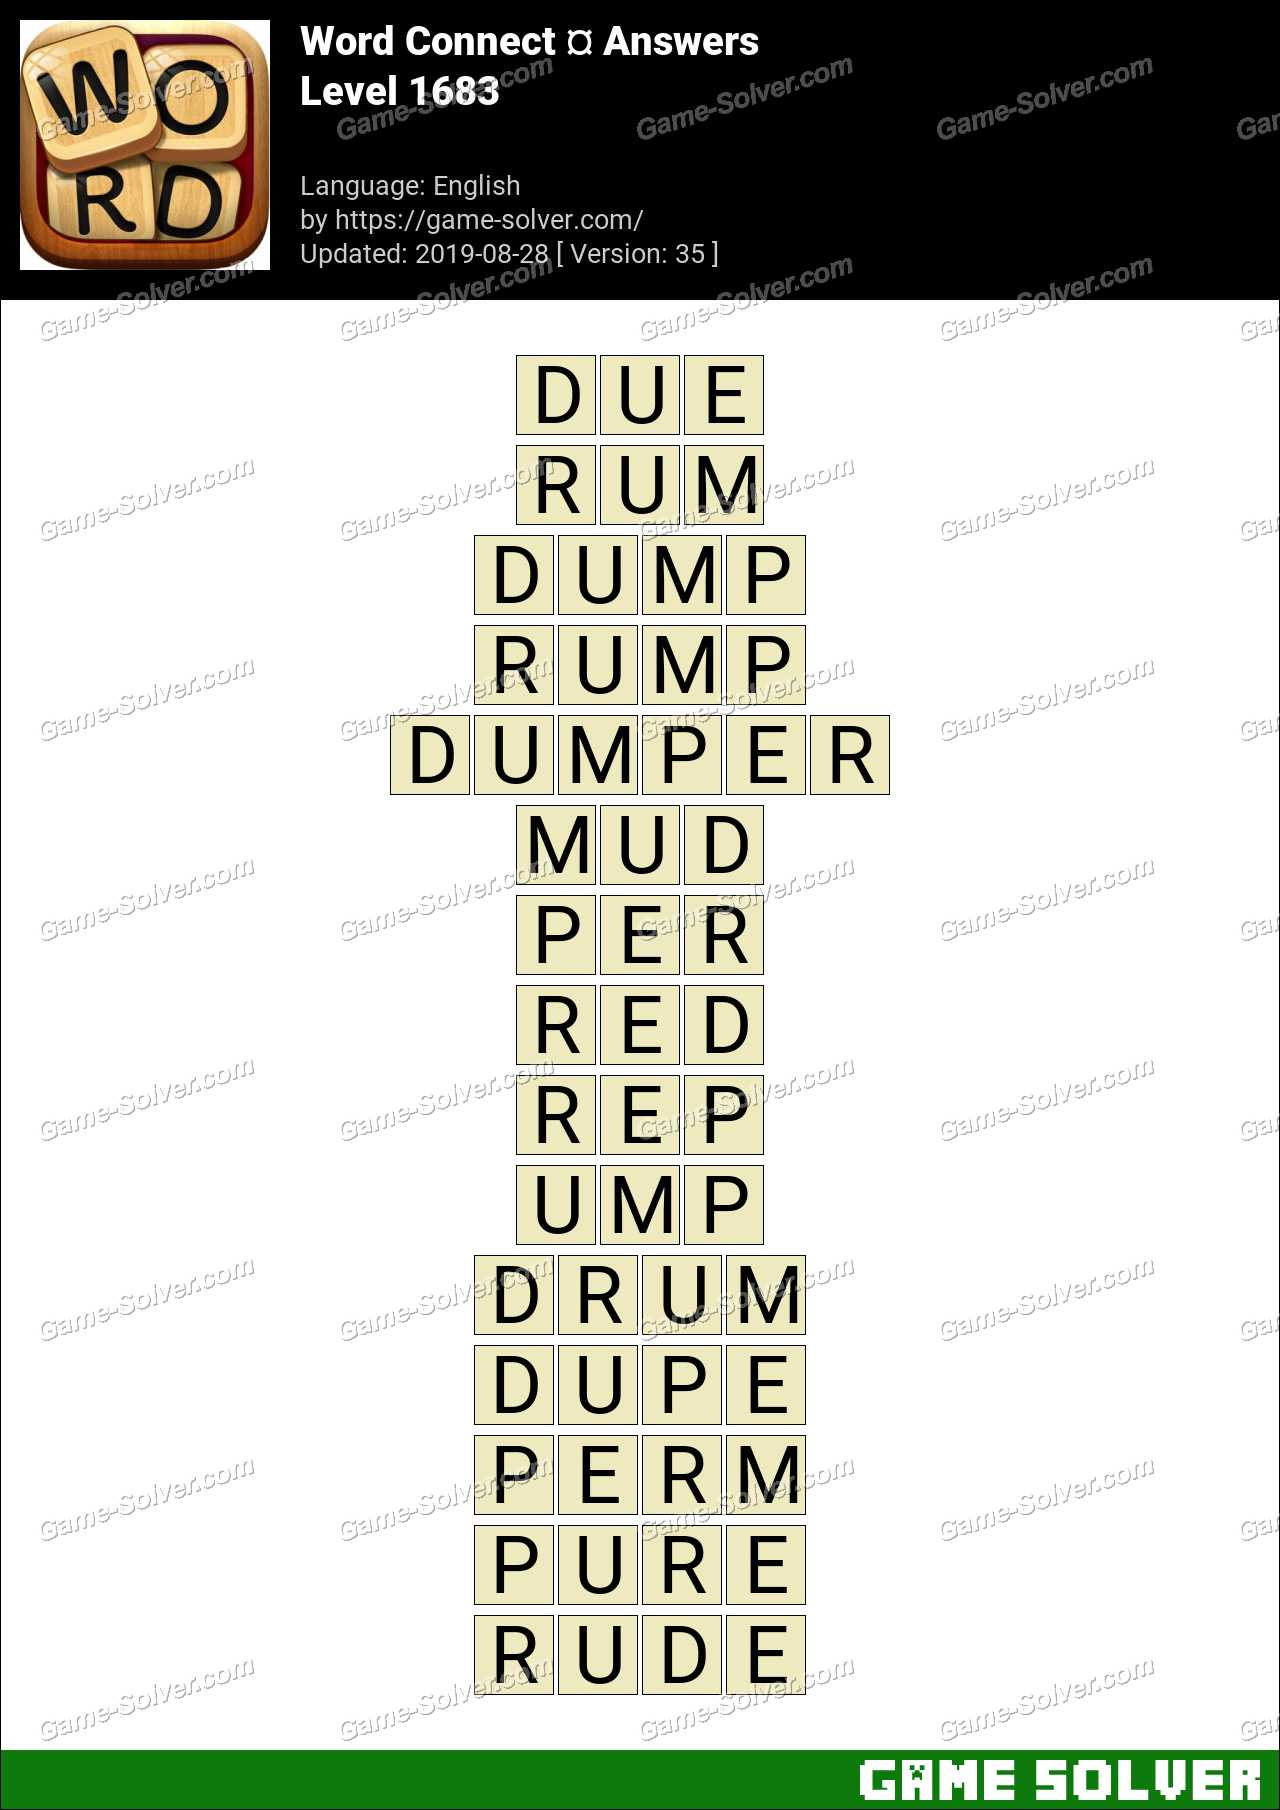 Word Connect Level 1683 Answers